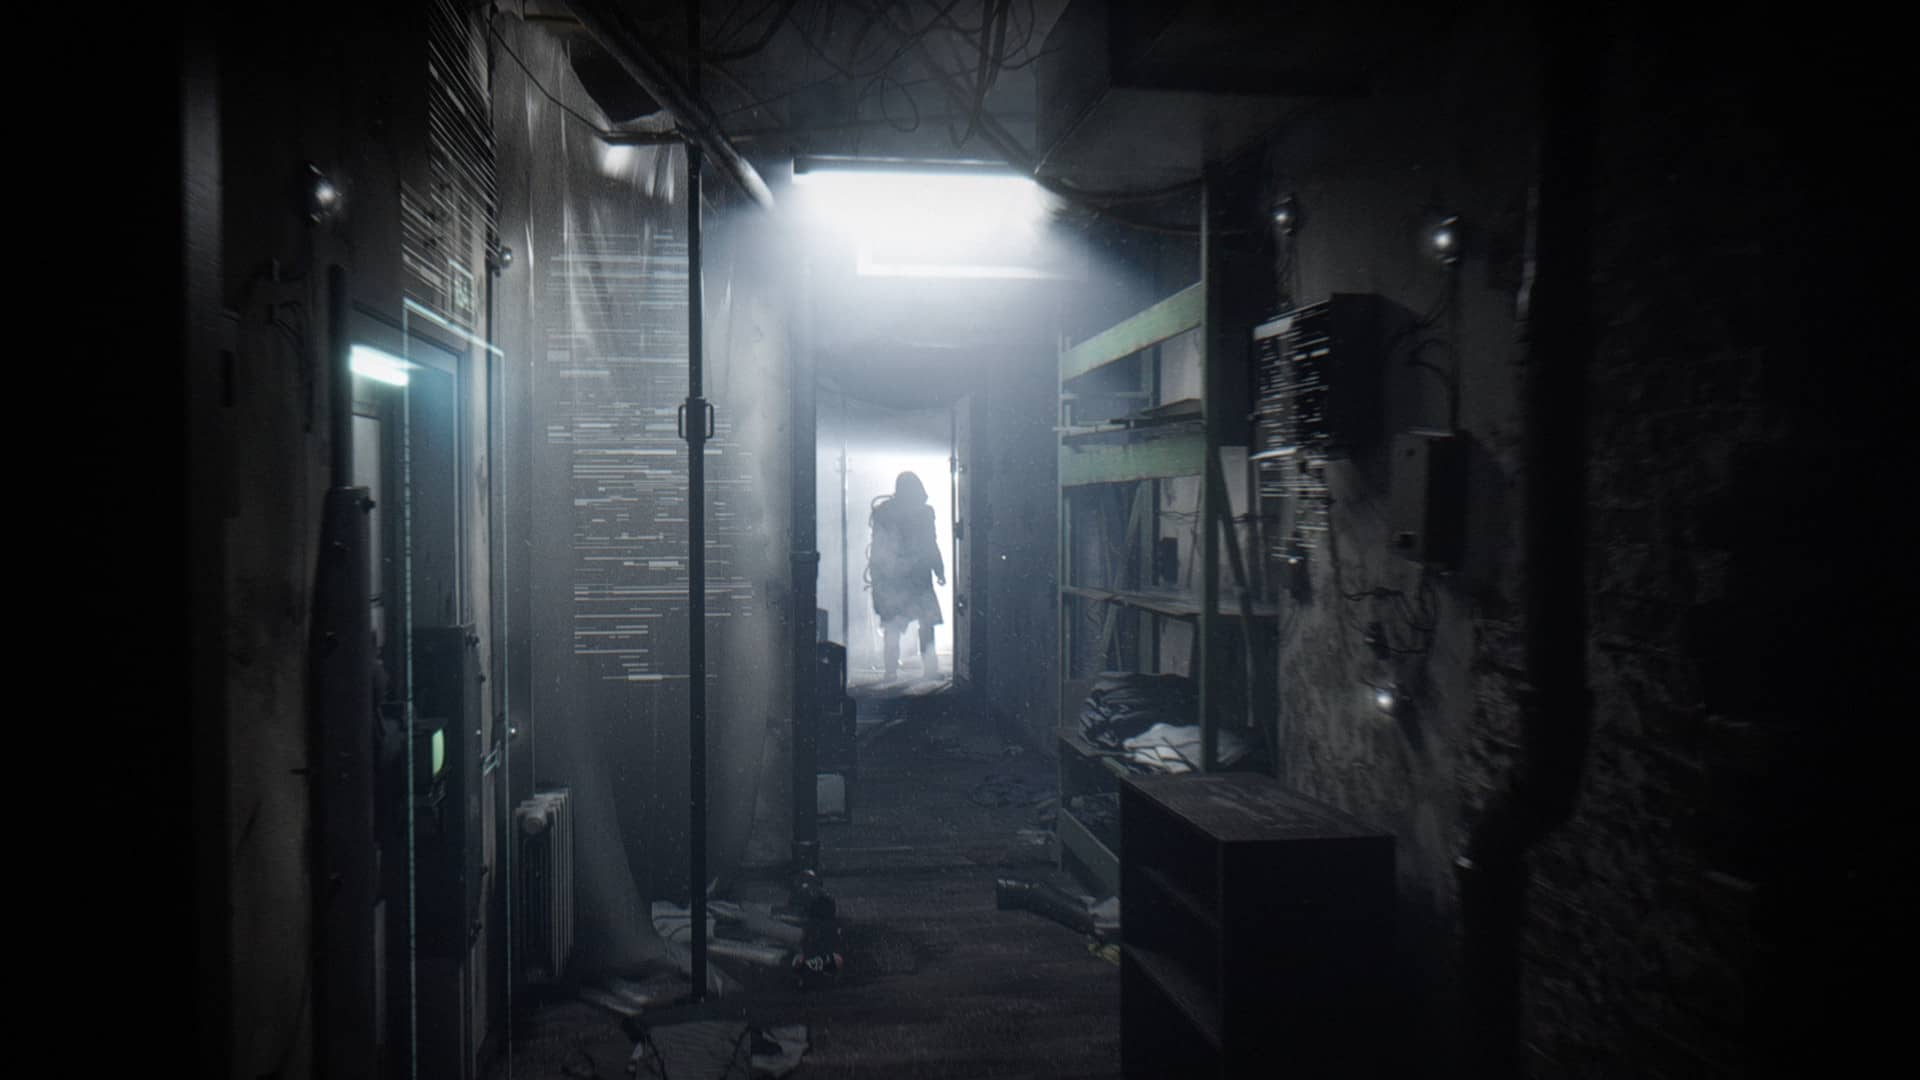 Horror Games For Xbox 1 : The best horror games on xbox one thatll leave you terrified u2013 gamespew